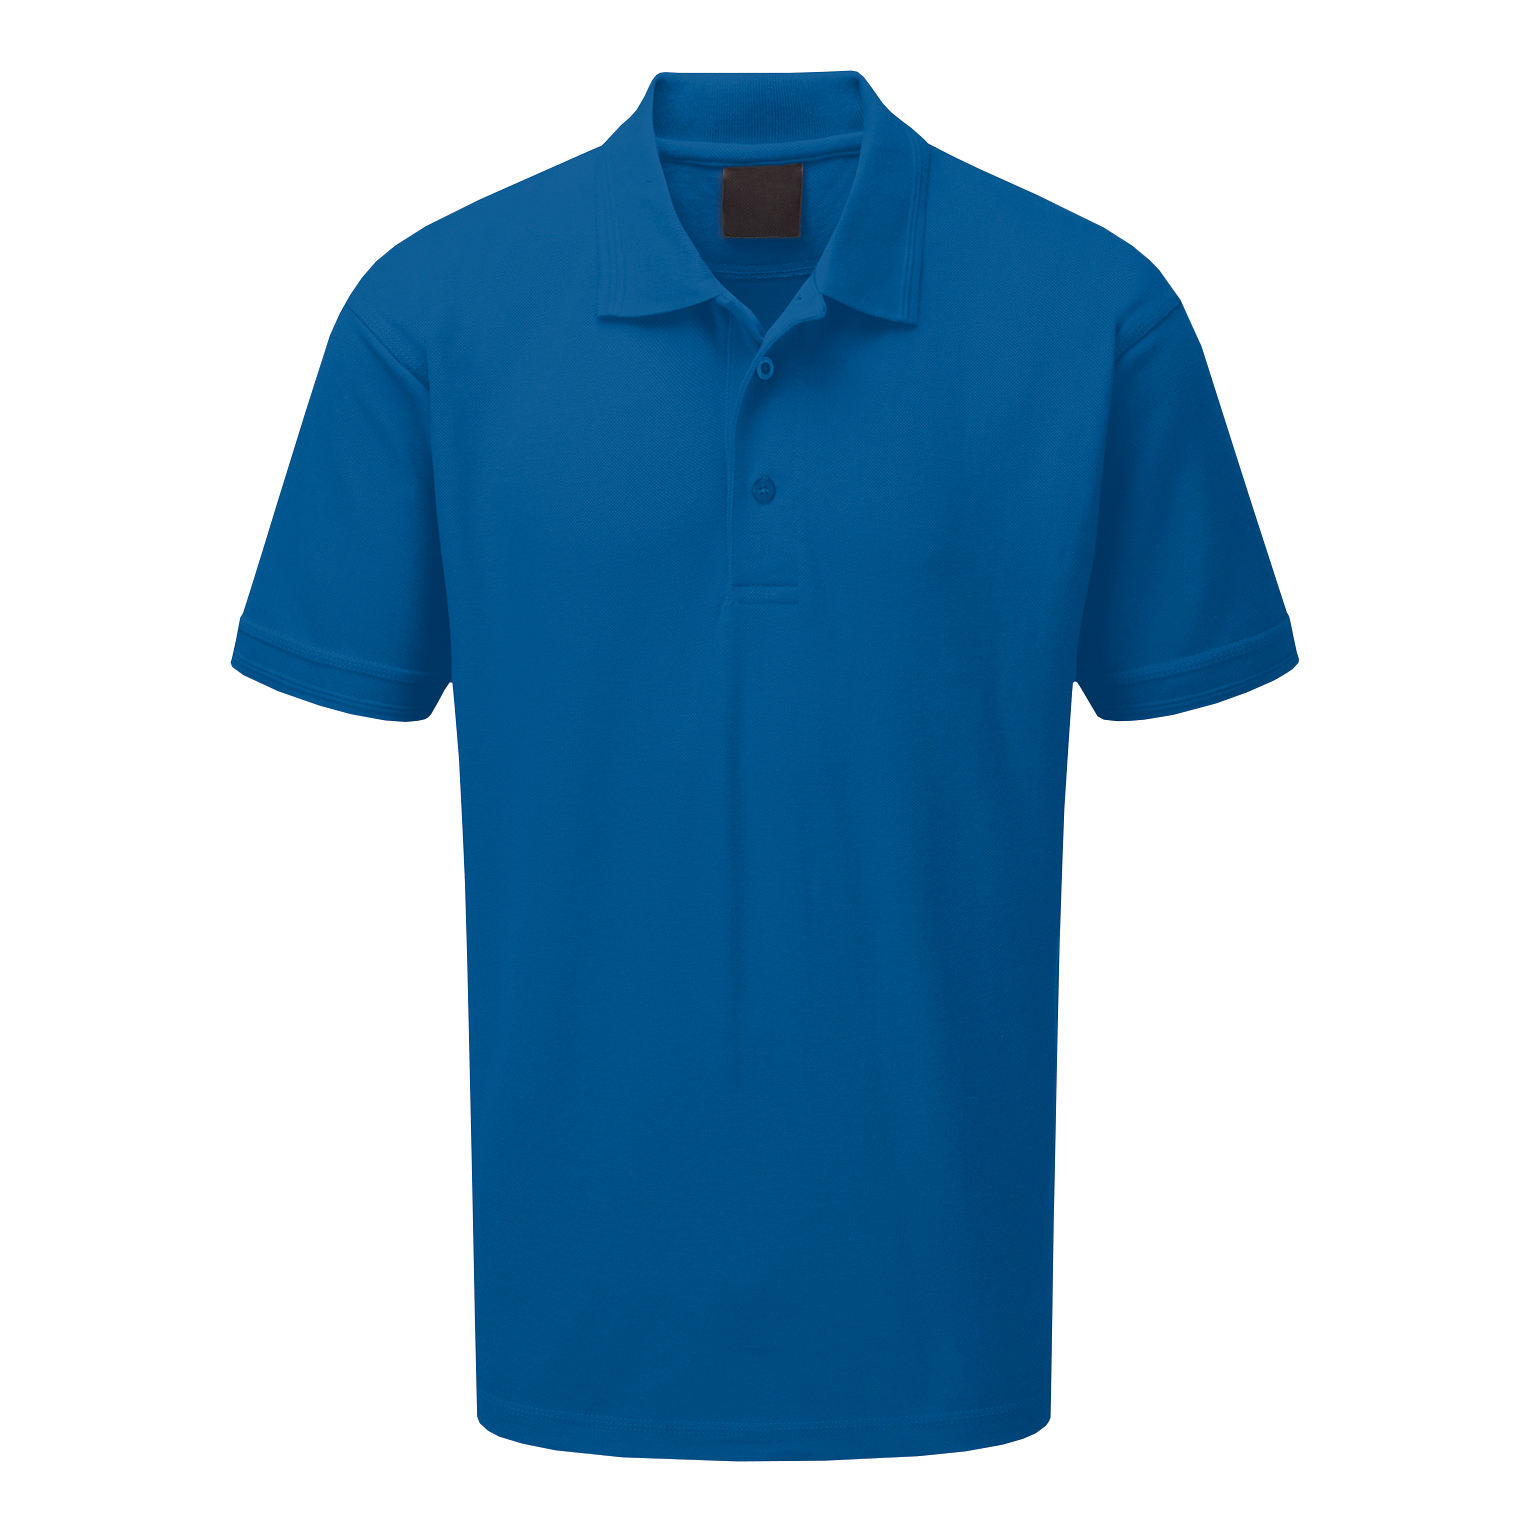 Premium Polo Shirt Triple Button 220gsm Polycotton 4XL Royal Blue Ref CLPKSR4XL *Approx 3 Day Leadtime*